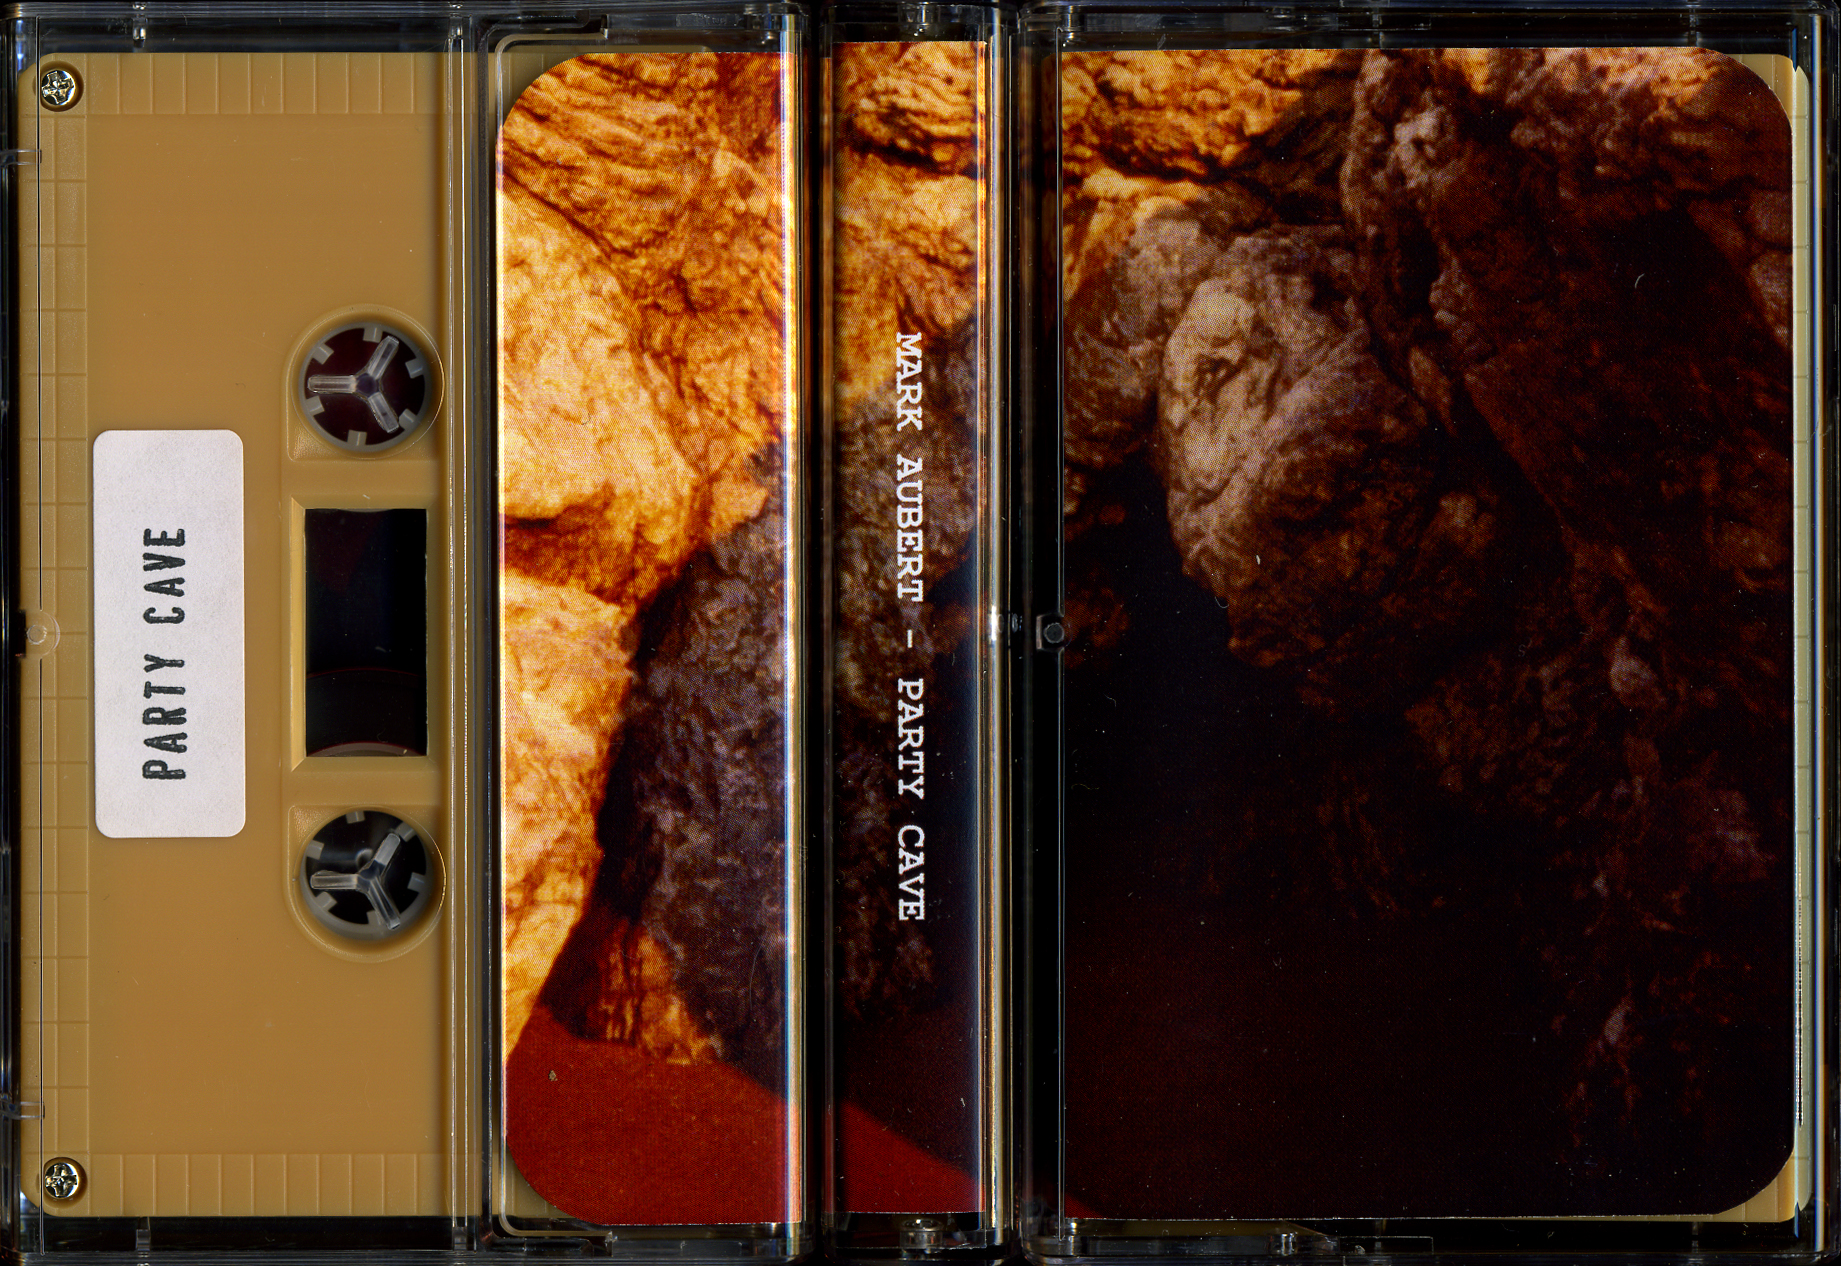 party cave tape spread 1.jpg